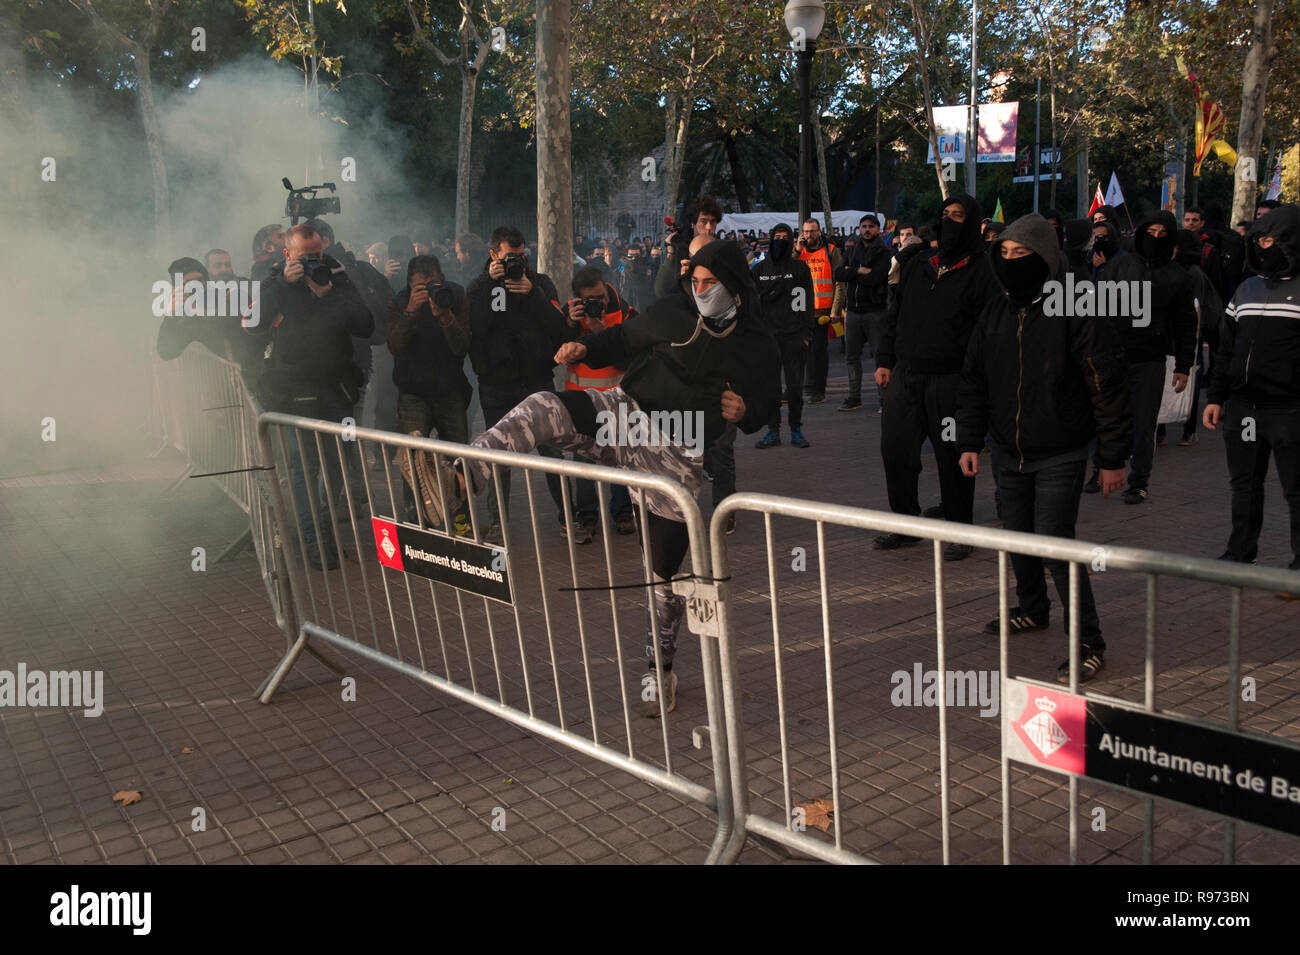 """Barcelona 21th December, 2018. Catalan activists in favor of the independence protest in front of the building of the """"Llotja de Mar"""" in Barcelona, where the council of ministers has met in an extraordinary way. The meeting of the Council of Ministers will take place in Catalonia just one year after the regional elections convened by the previous government under Article 155 of the Constitution. Charlie Perez/Alamy Live News Stock Photo"""